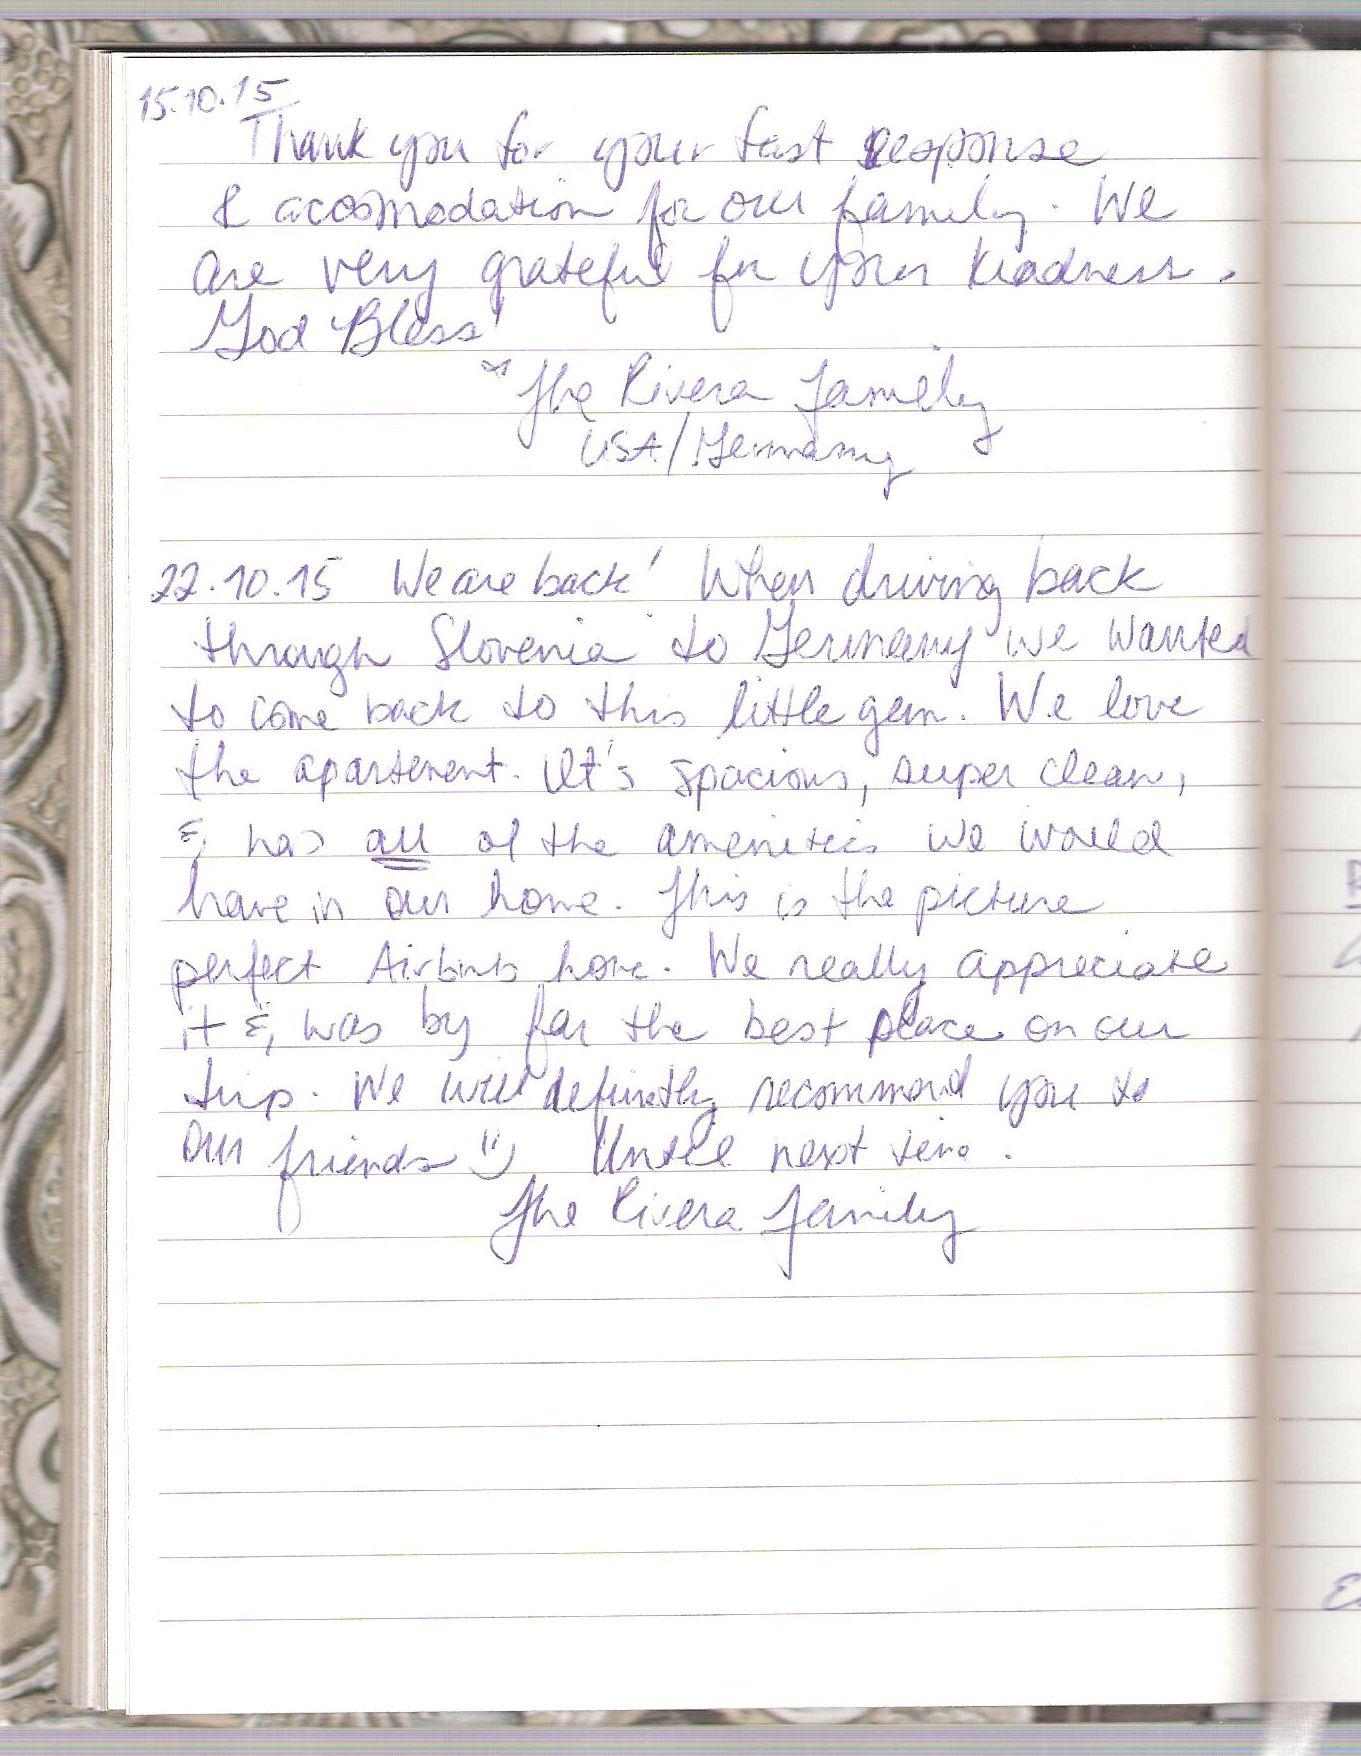 guestbook-page-034